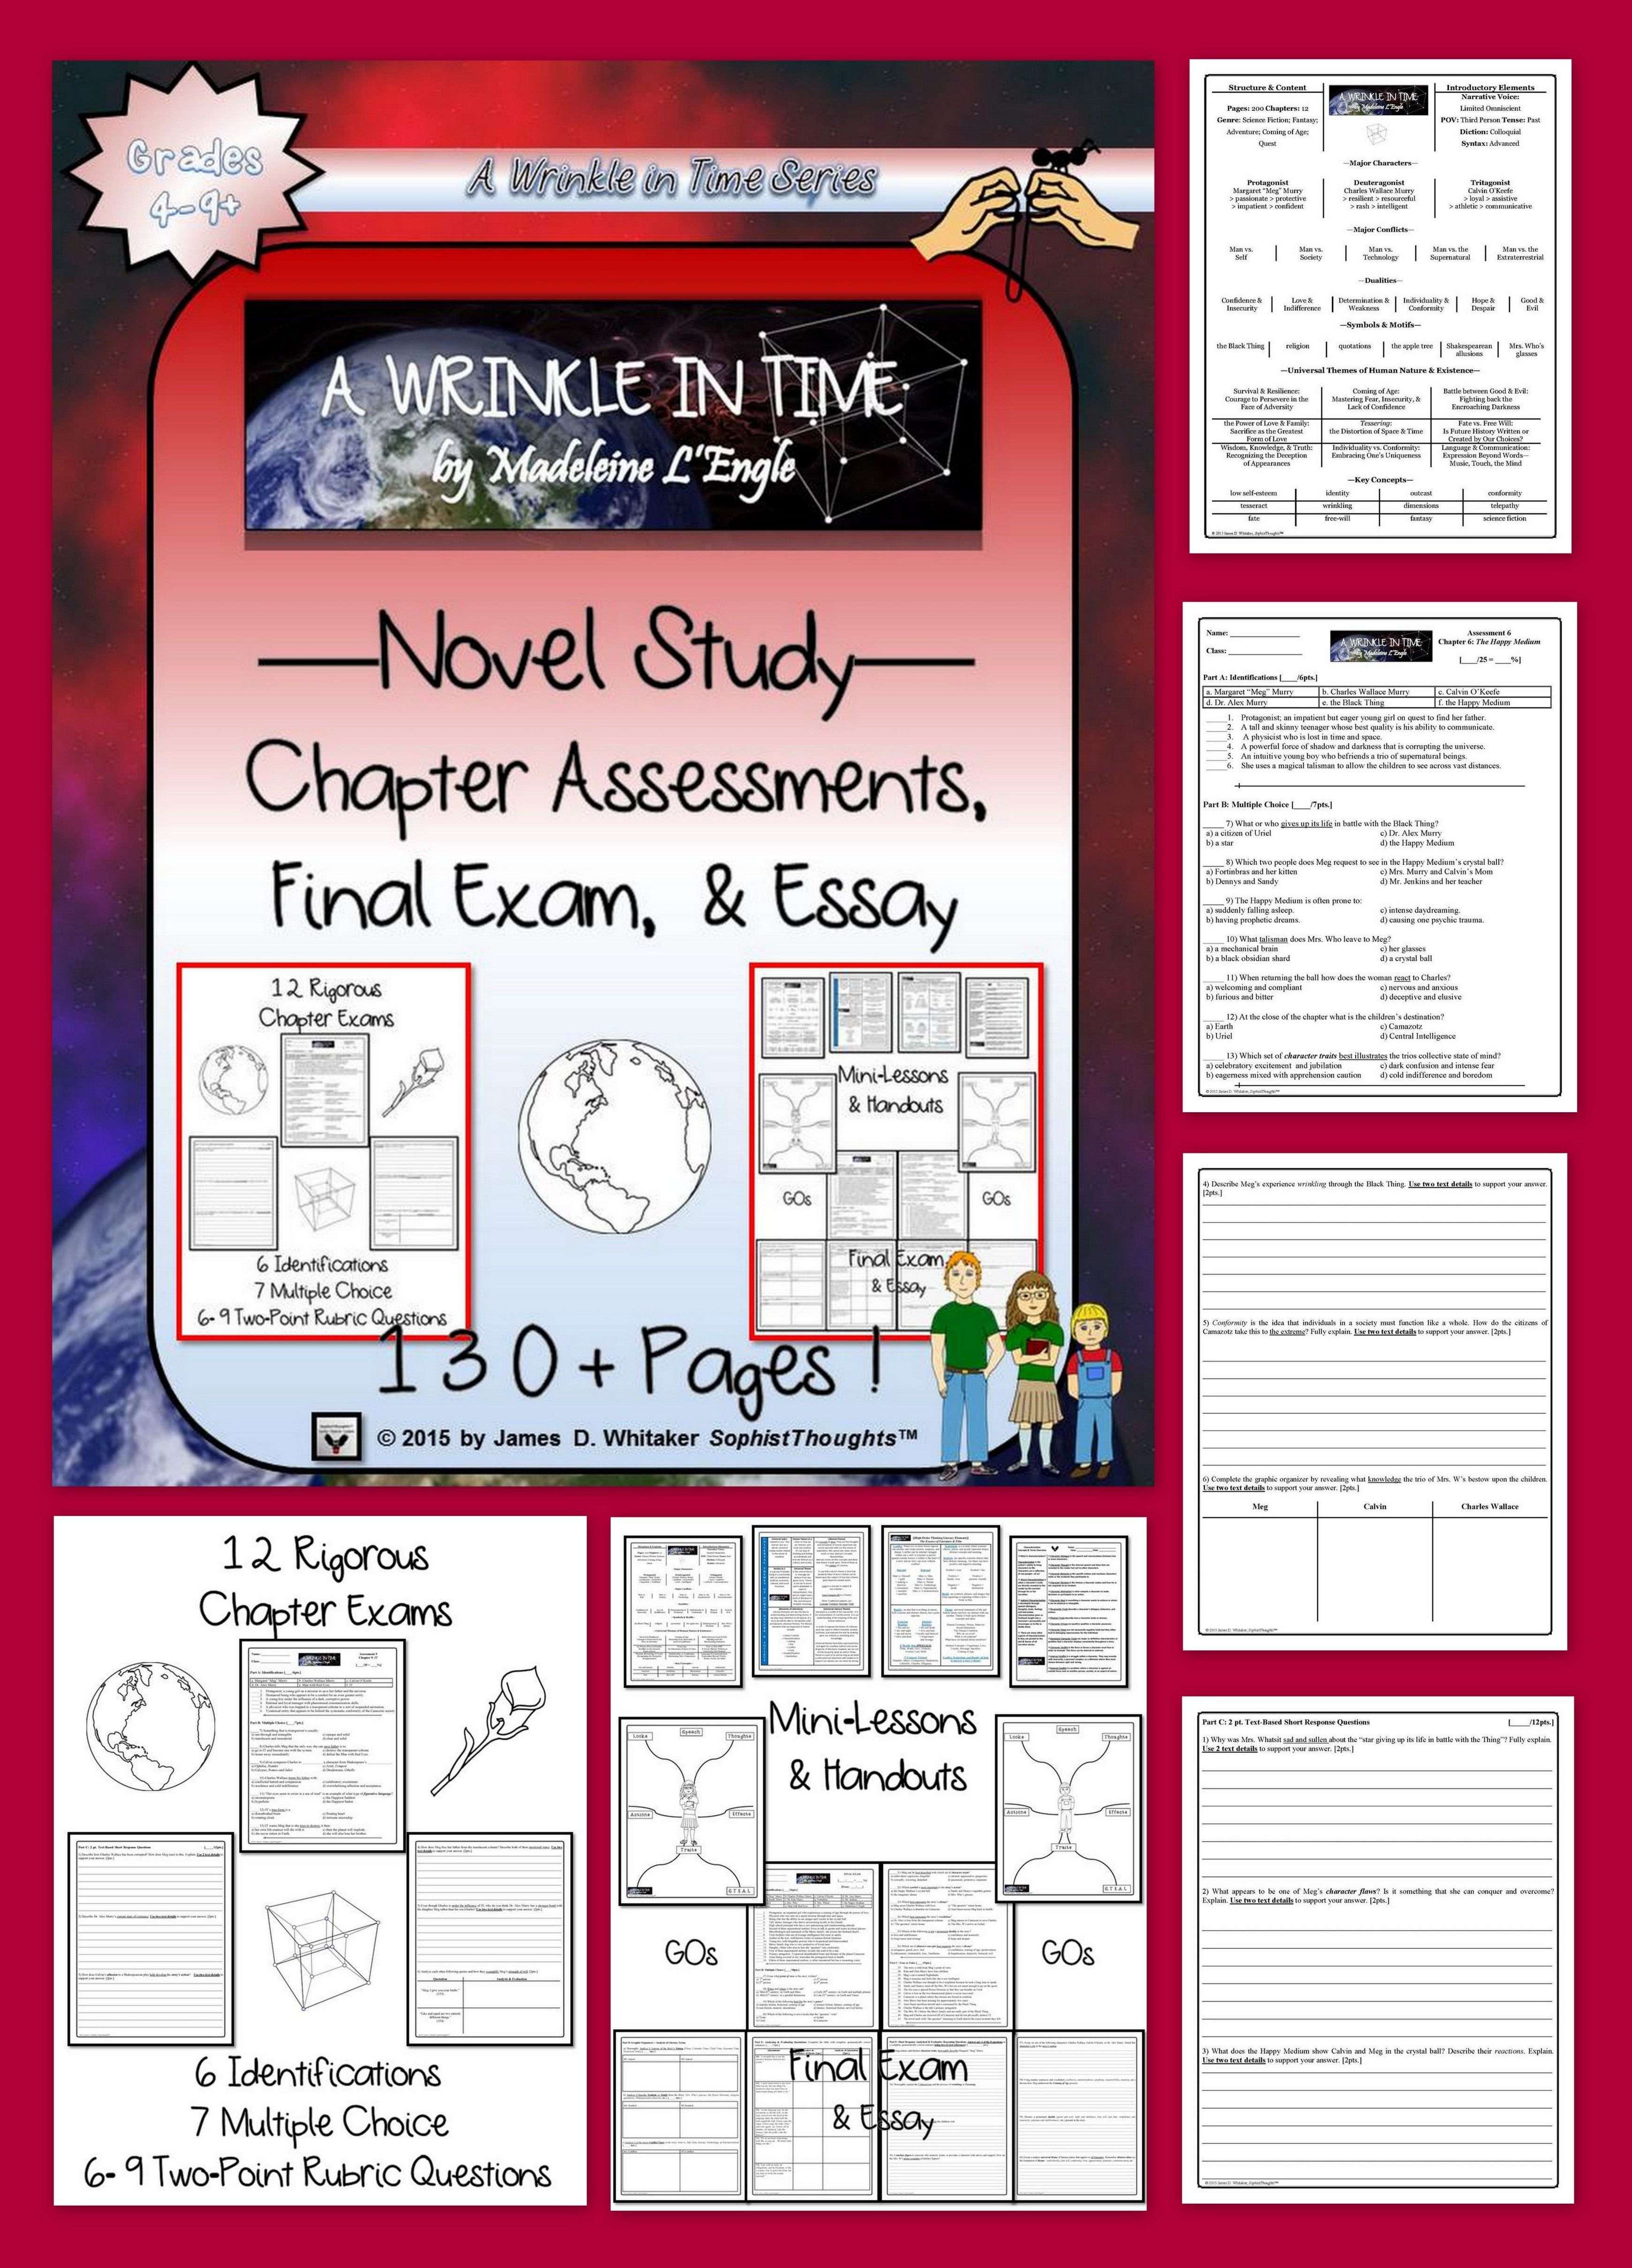 A Wrinkle In Time By Madeleine L Engle Novel Study Chapter Assessments